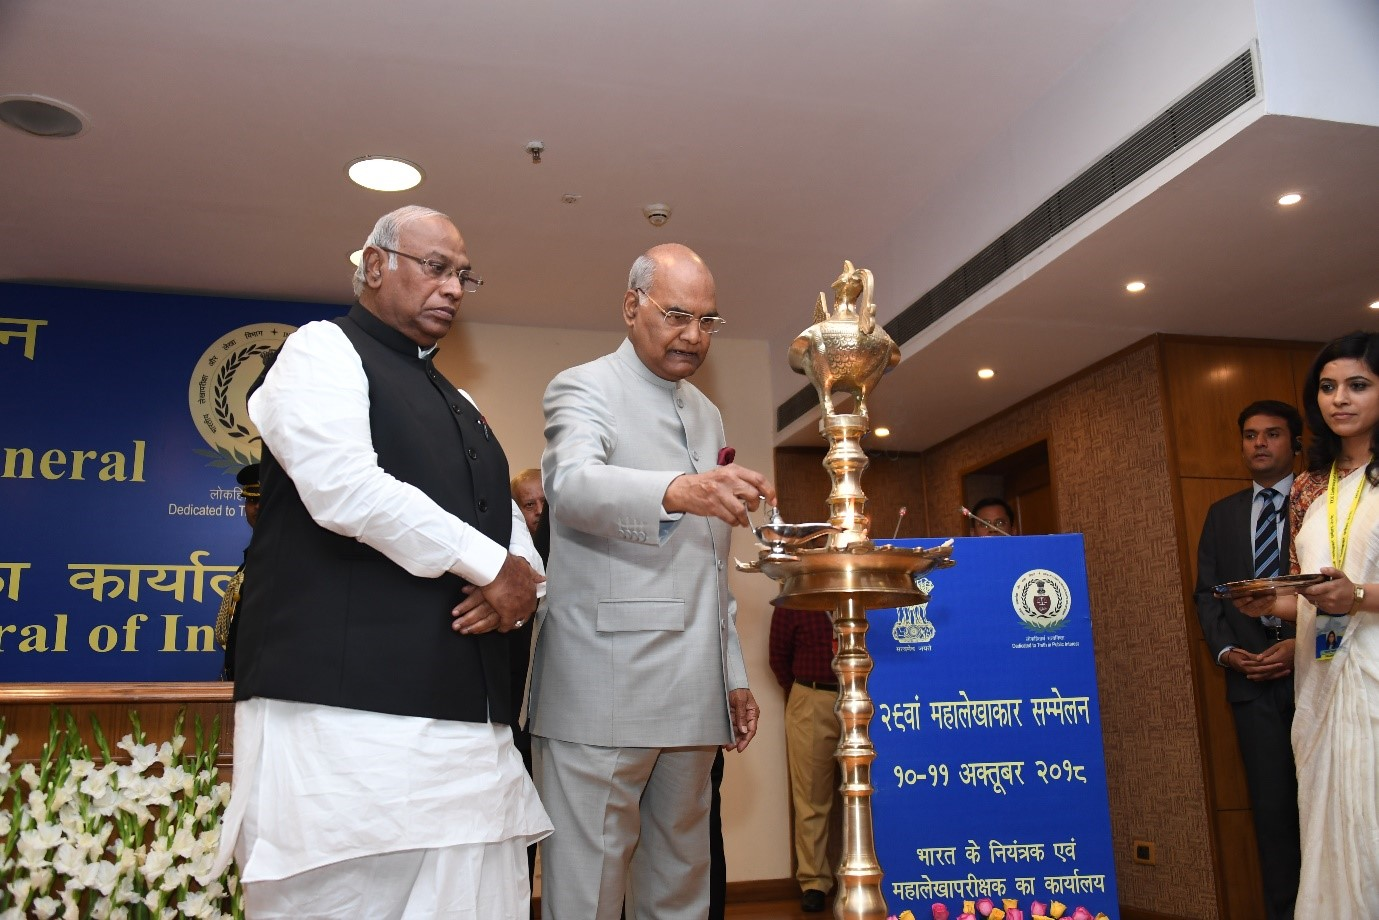 29th ASG Conference 2018 - Inaugural Function